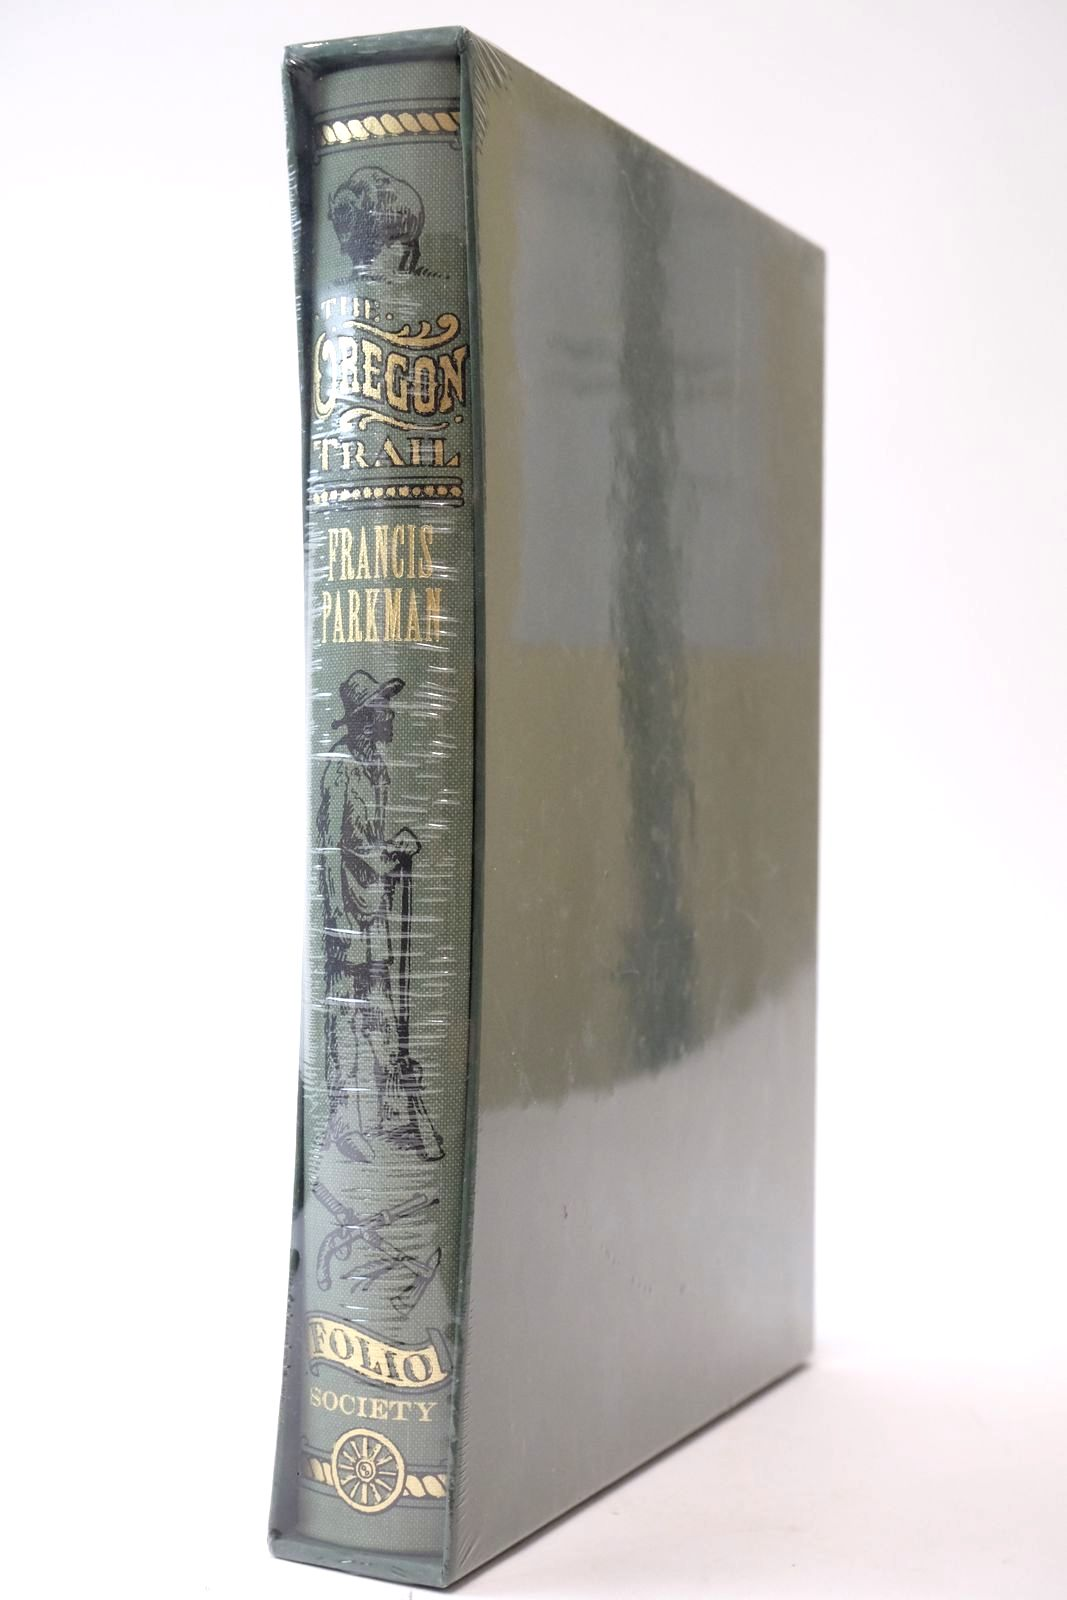 Photo of THE OREGON TRAIL written by Parkman, Francis McLynn, Frank published by Folio Society (STOCK CODE: 2135285)  for sale by Stella & Rose's Books